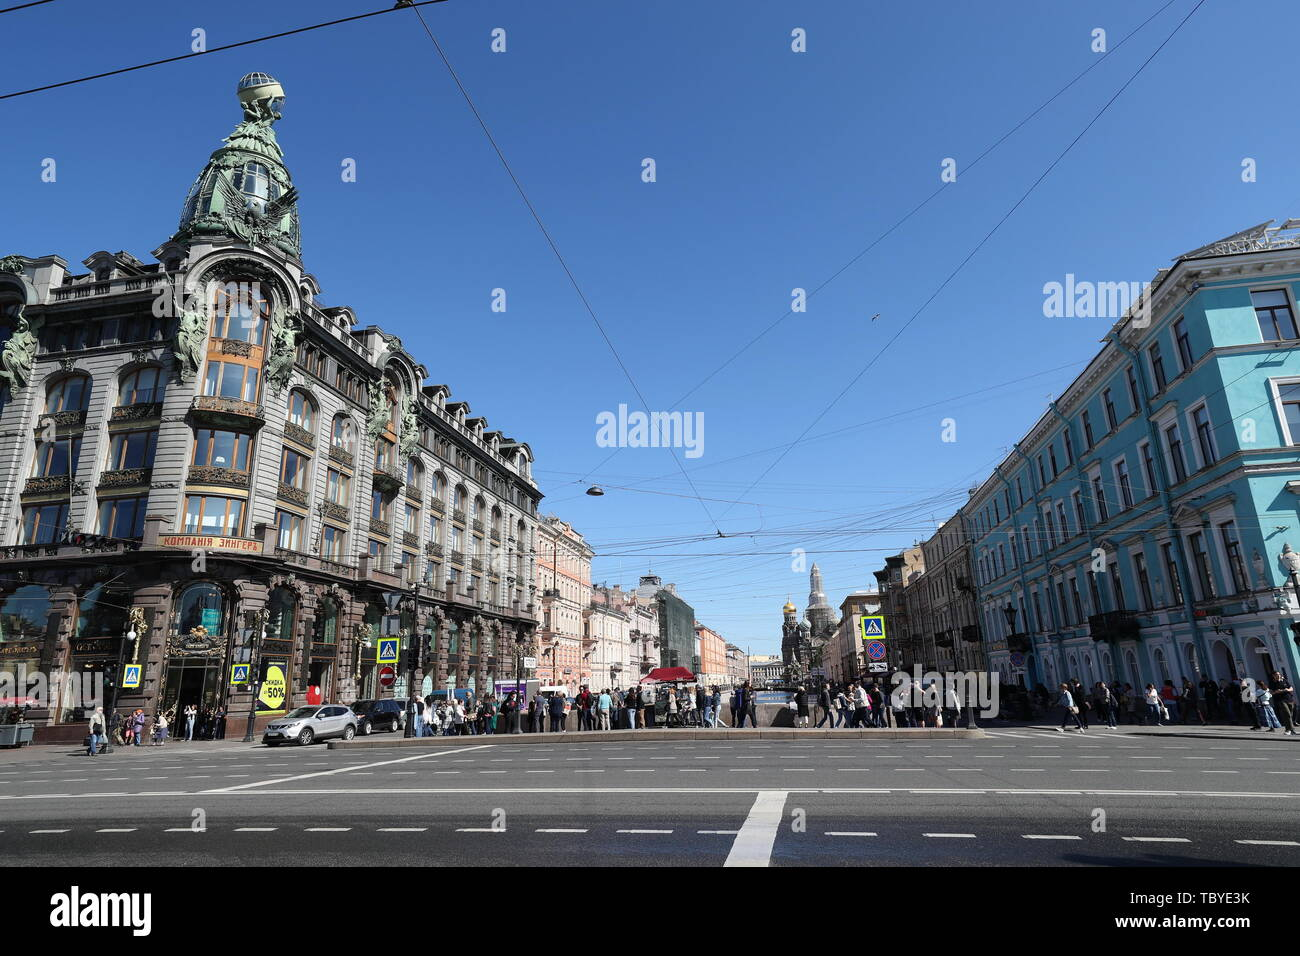 St. Petersburg. 3rd June, 2019. Photo taken on June 3, 2019 shows a street view of St. Petersburg, Russia. Chinese President Xi Jinping will pay a state visit to Russia from June 5 to 7 at the invitation of Russian President Vladimir Putin, a Chinese Foreign Ministry spokesperson announced on Wednesday at a press briefing. Xi will also attend the 23rd St. Petersburg International Economic Forum during his stay, according to spokesperson Lu Kang. Credit: Lu Jinbo/Xinhua/Alamy Live News - Stock Image